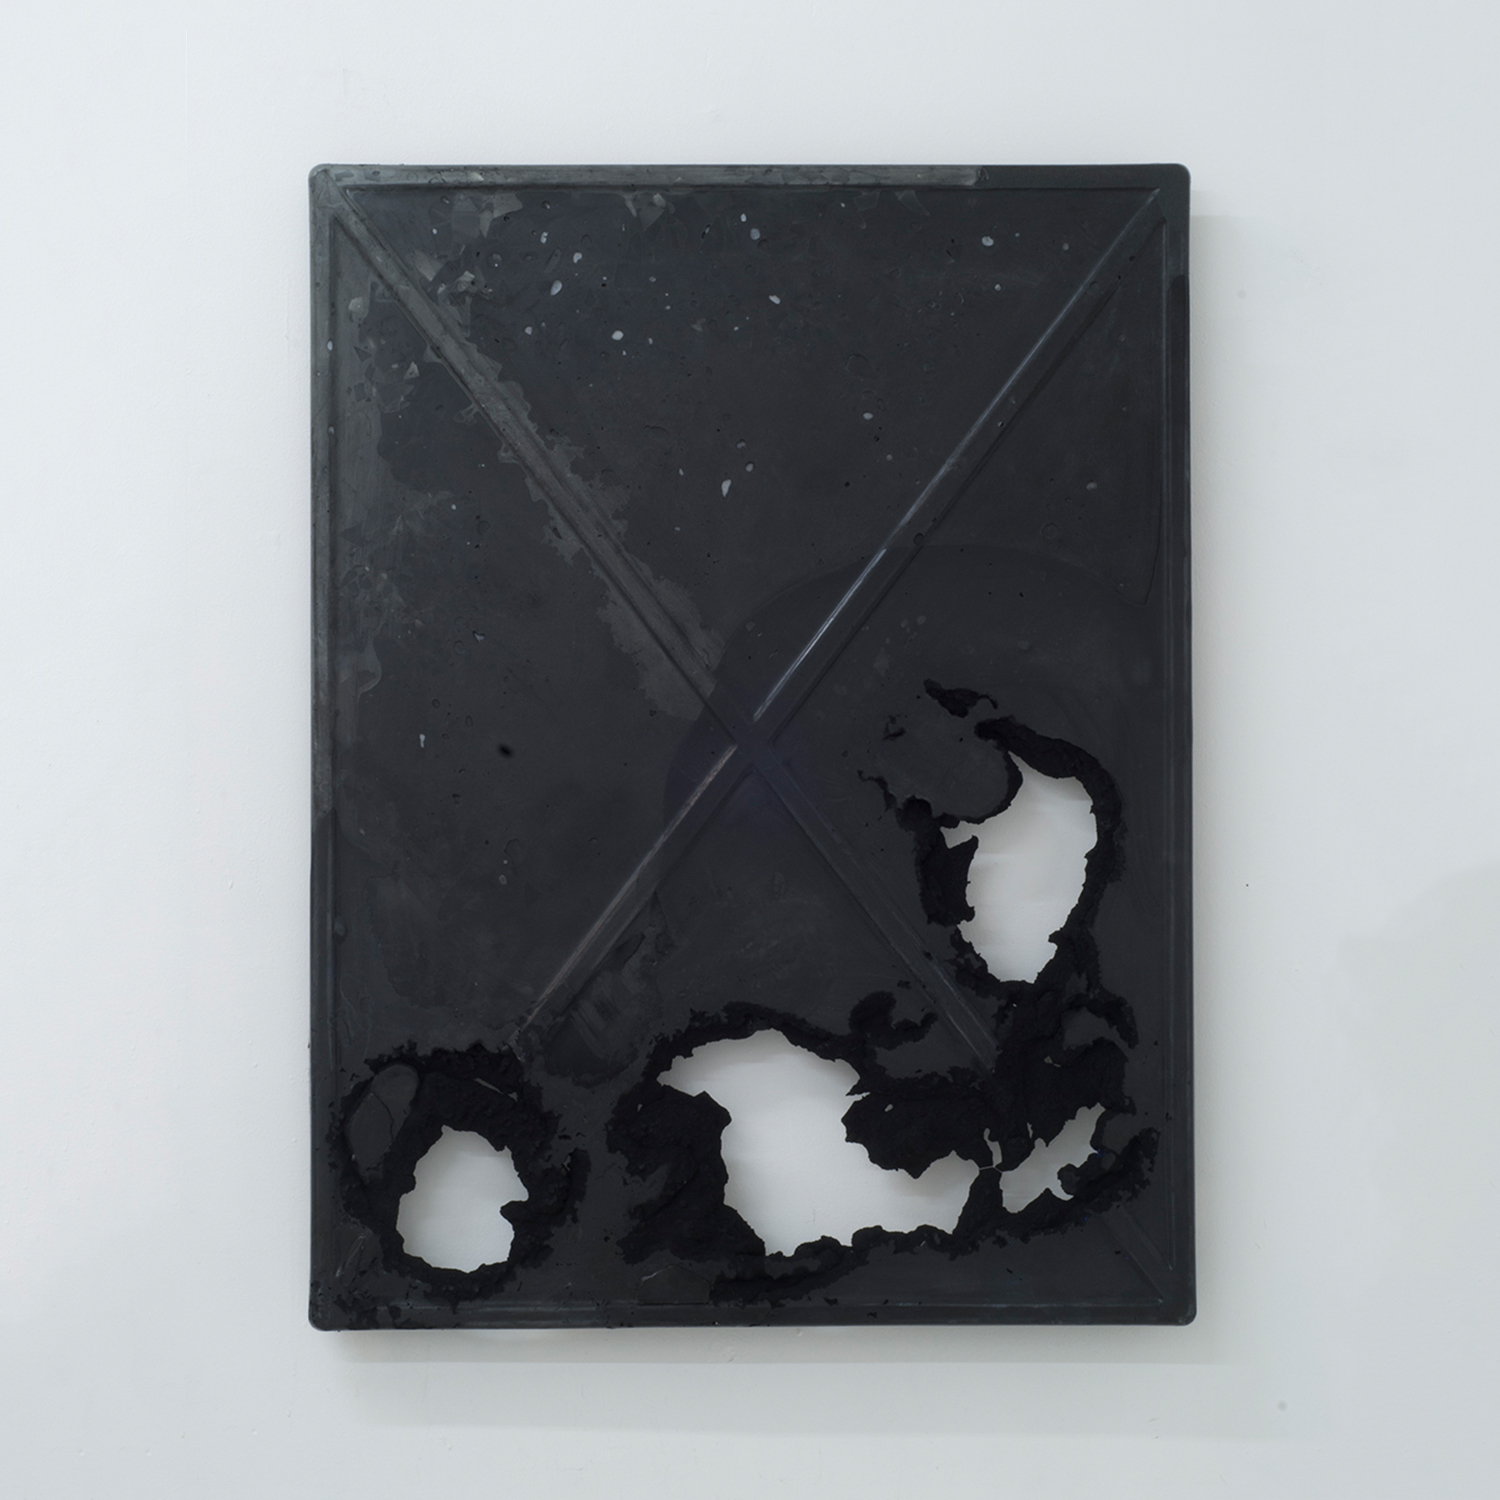 X Slab (finite black)   Marble, glass, dry pigment, resin 32 x 42 inches 81 x 107 cm 2017